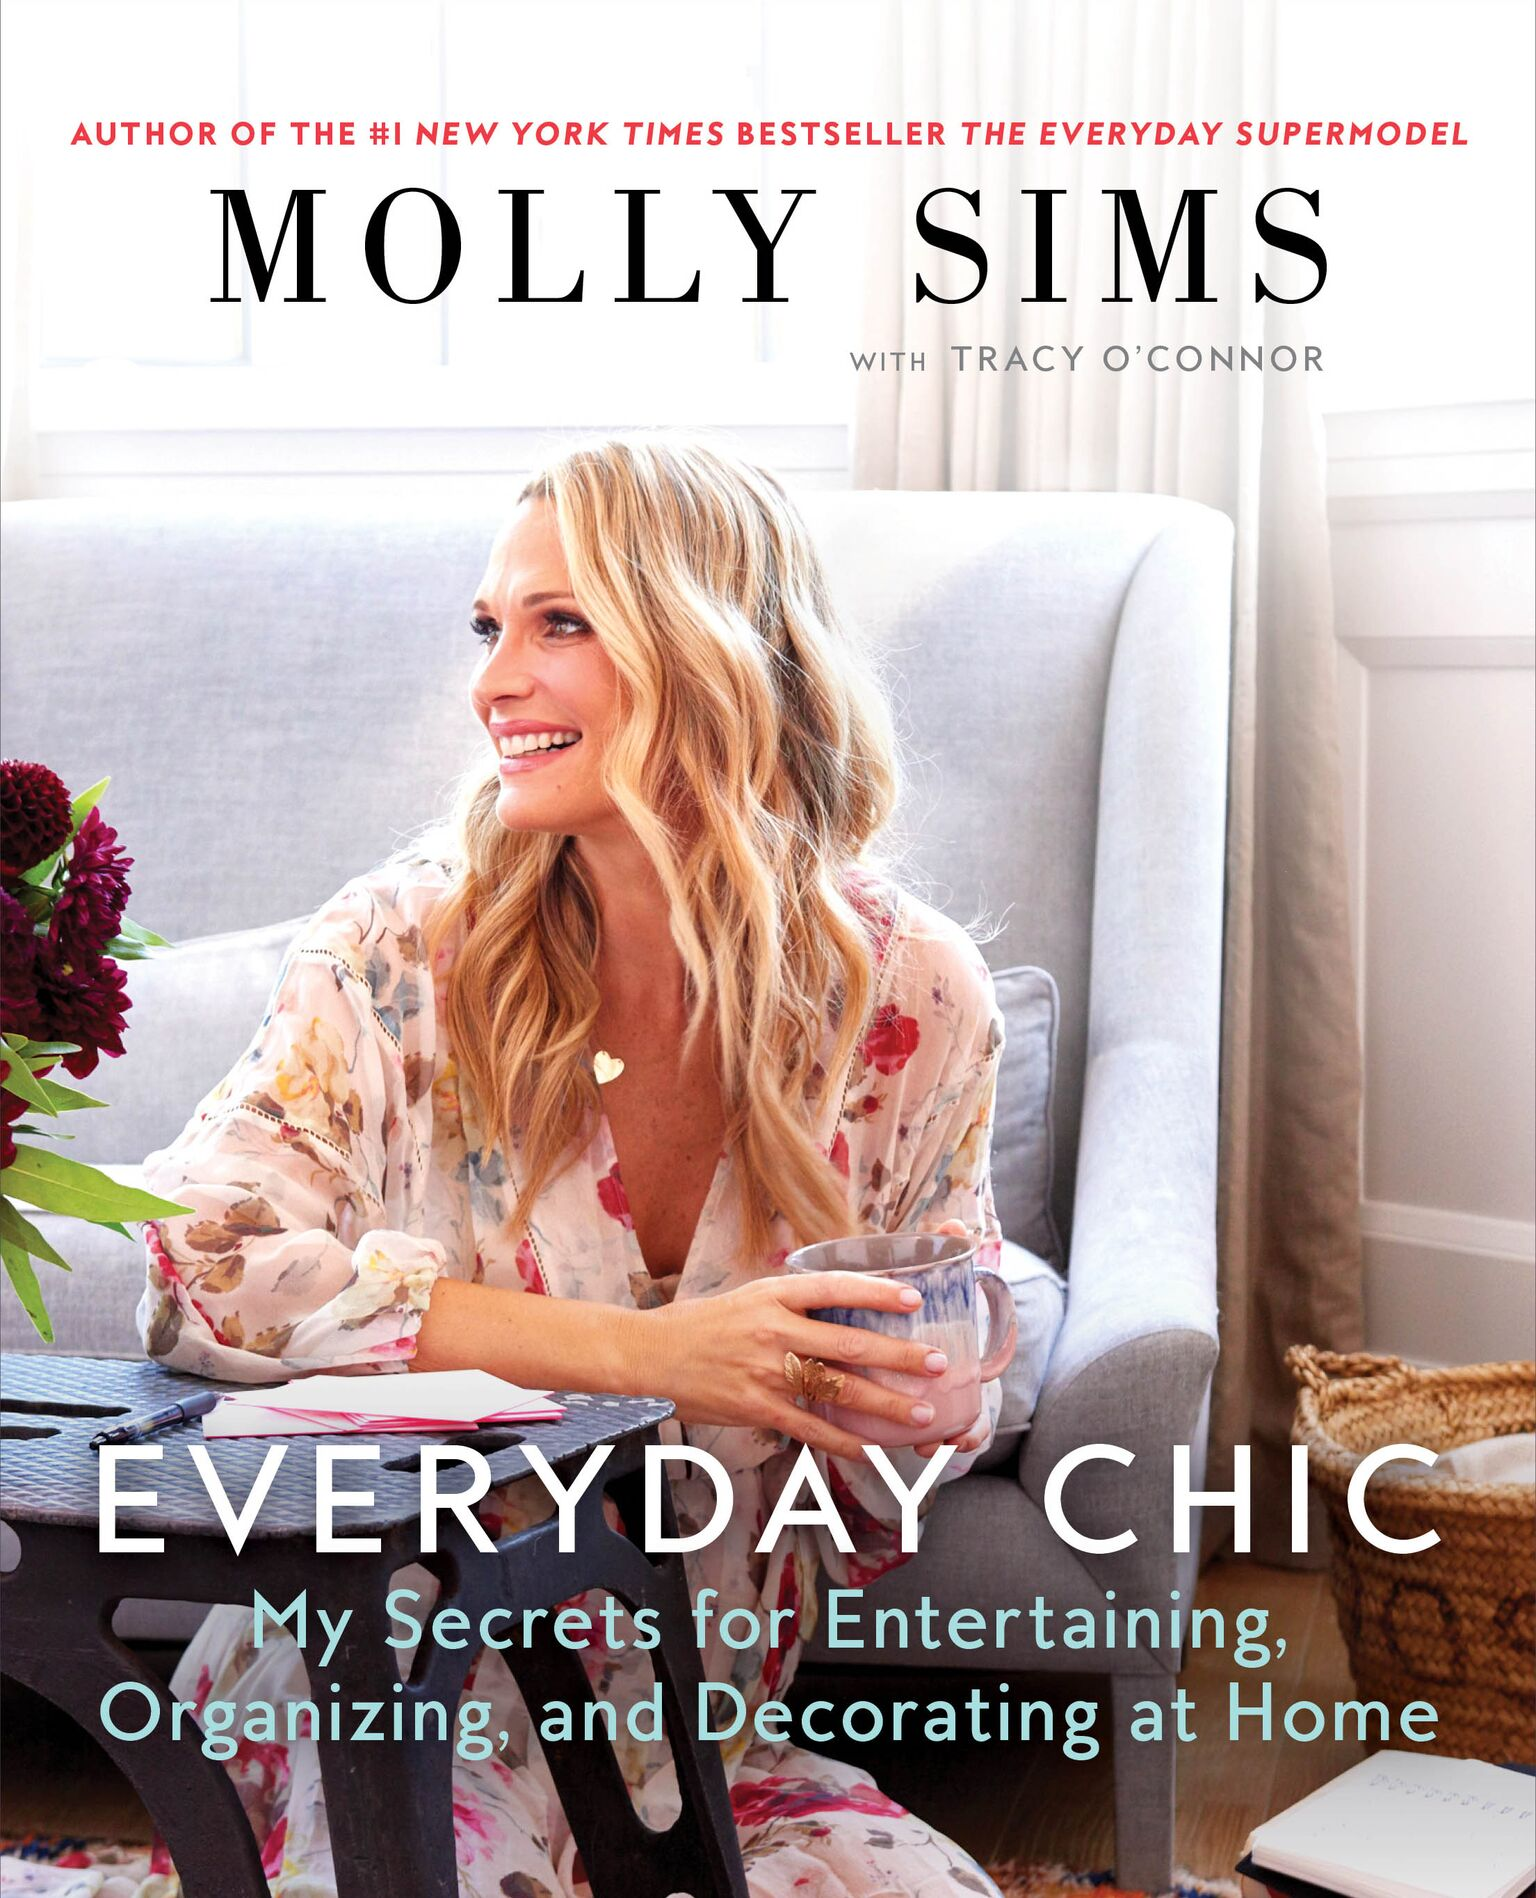 The cover of Sims' latest book